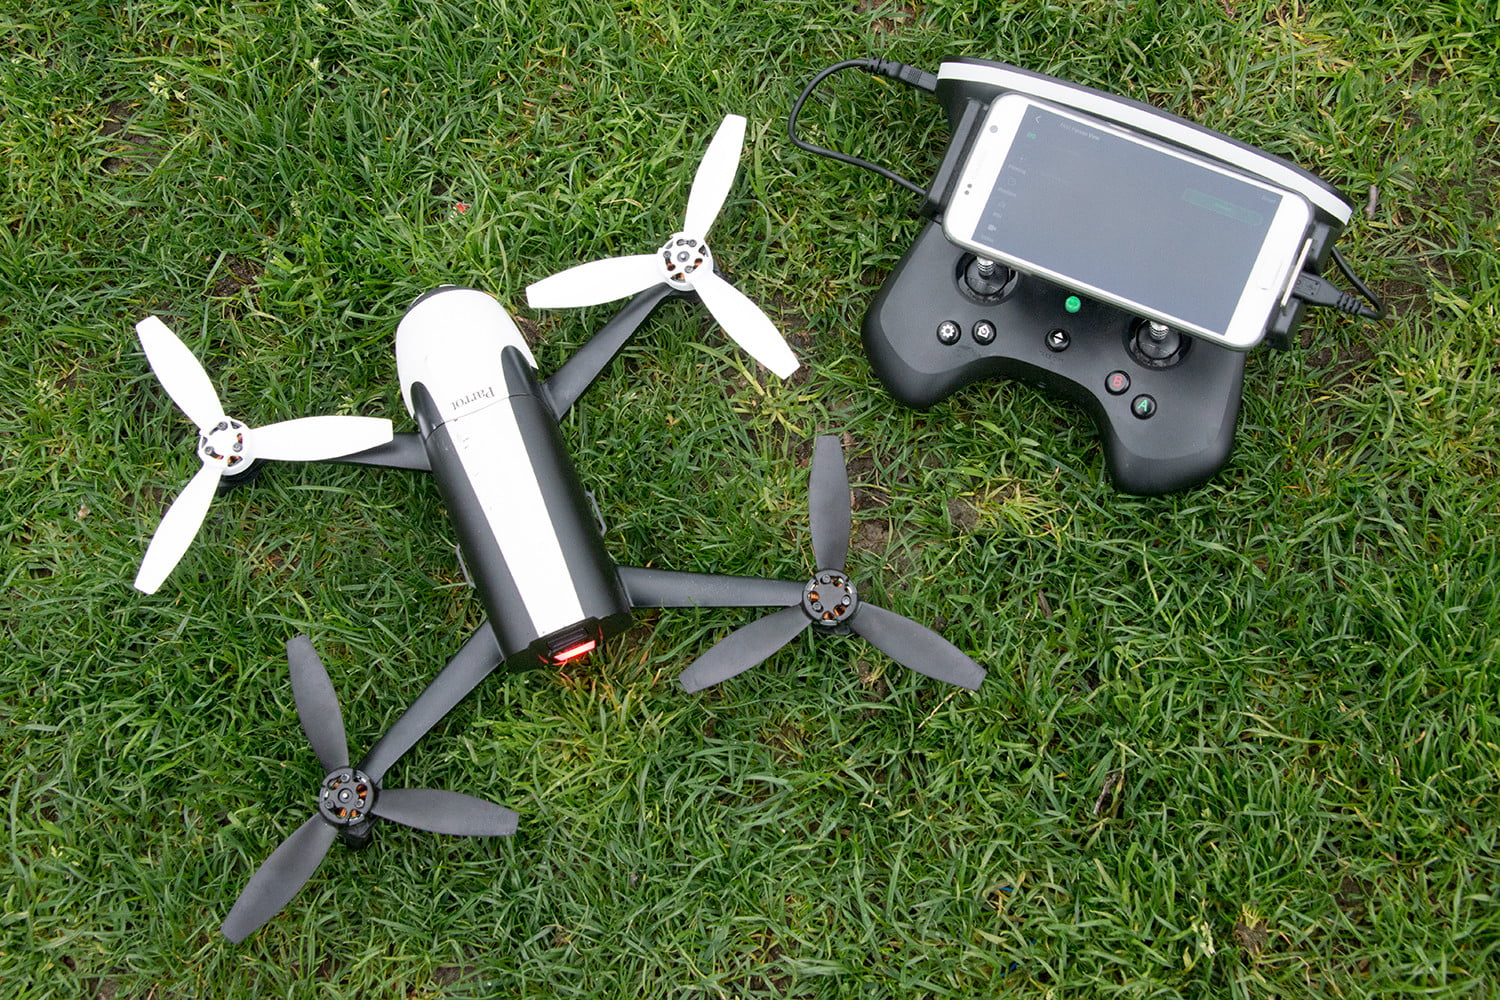 Parrot Bebop 2 Fpv Review Digital Trends Way Video Switch 0007